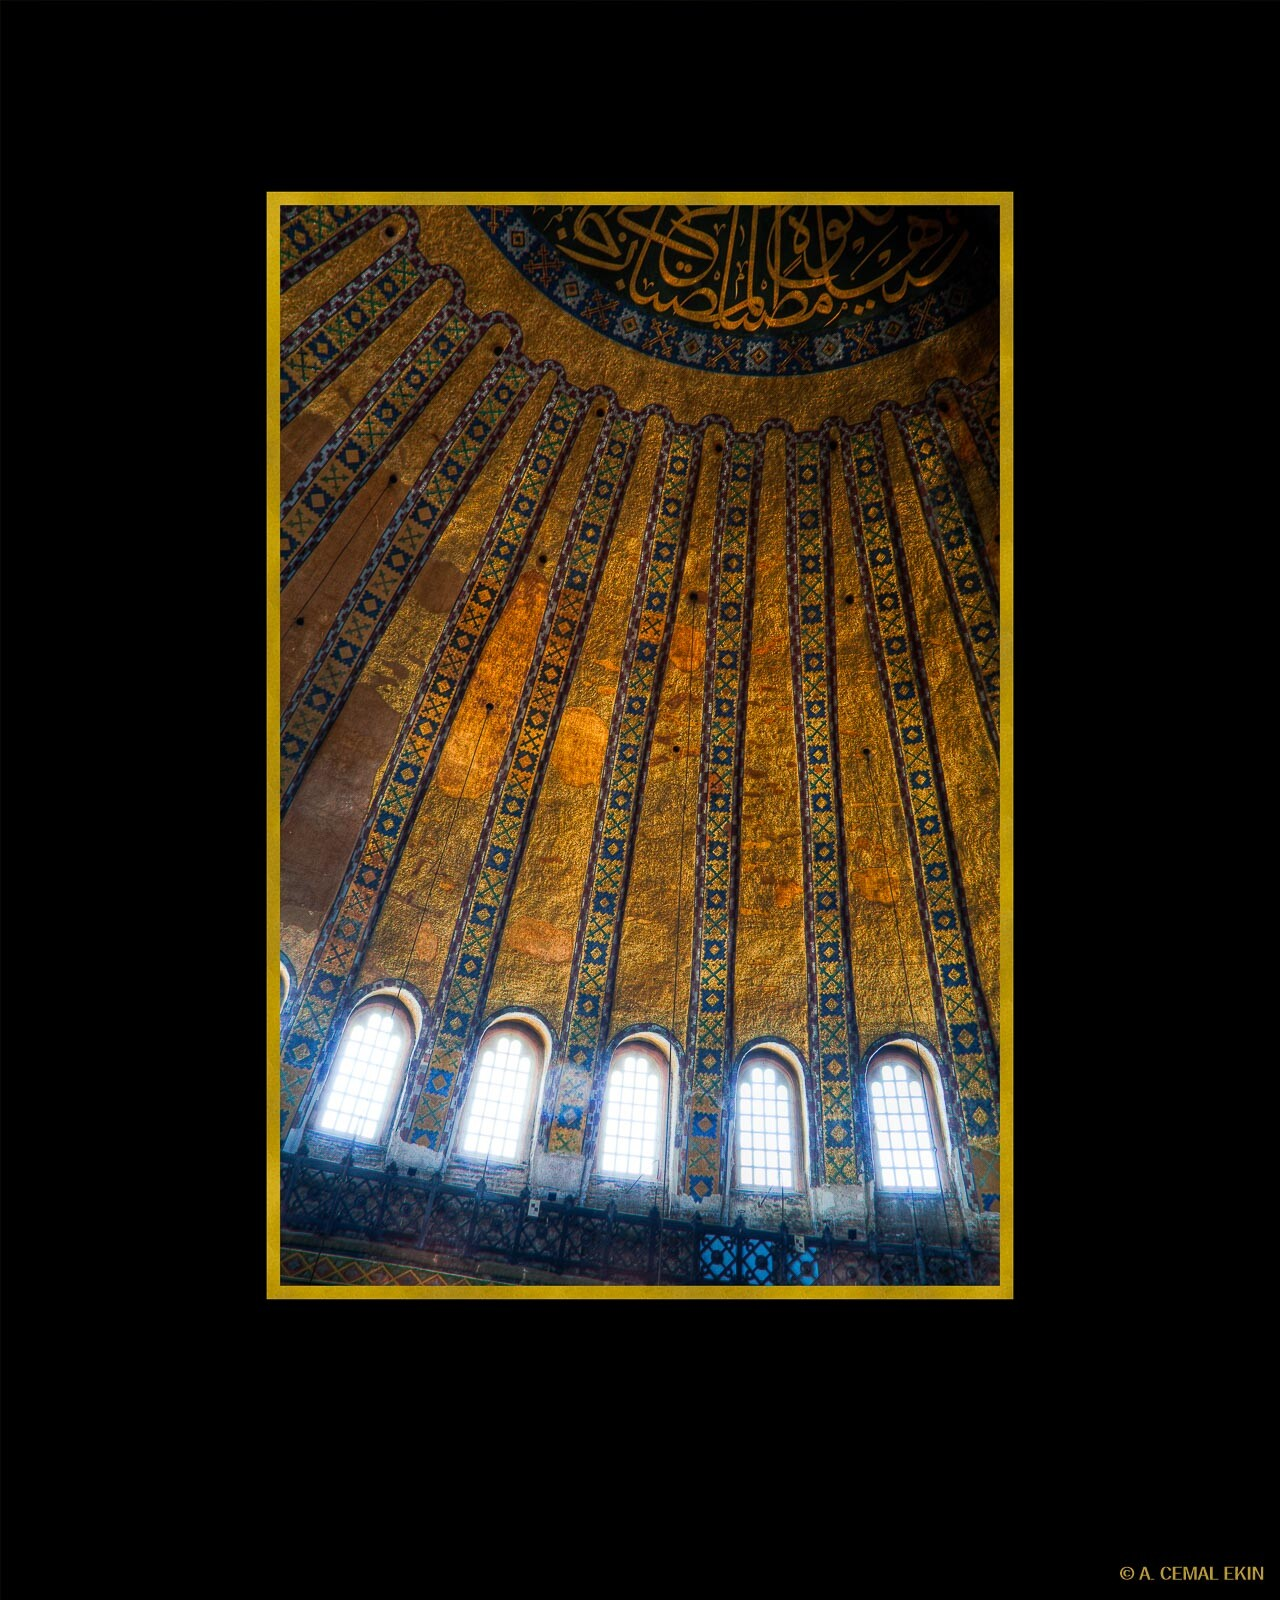 Hagia Sophia, Main dome, dome ribs, windows